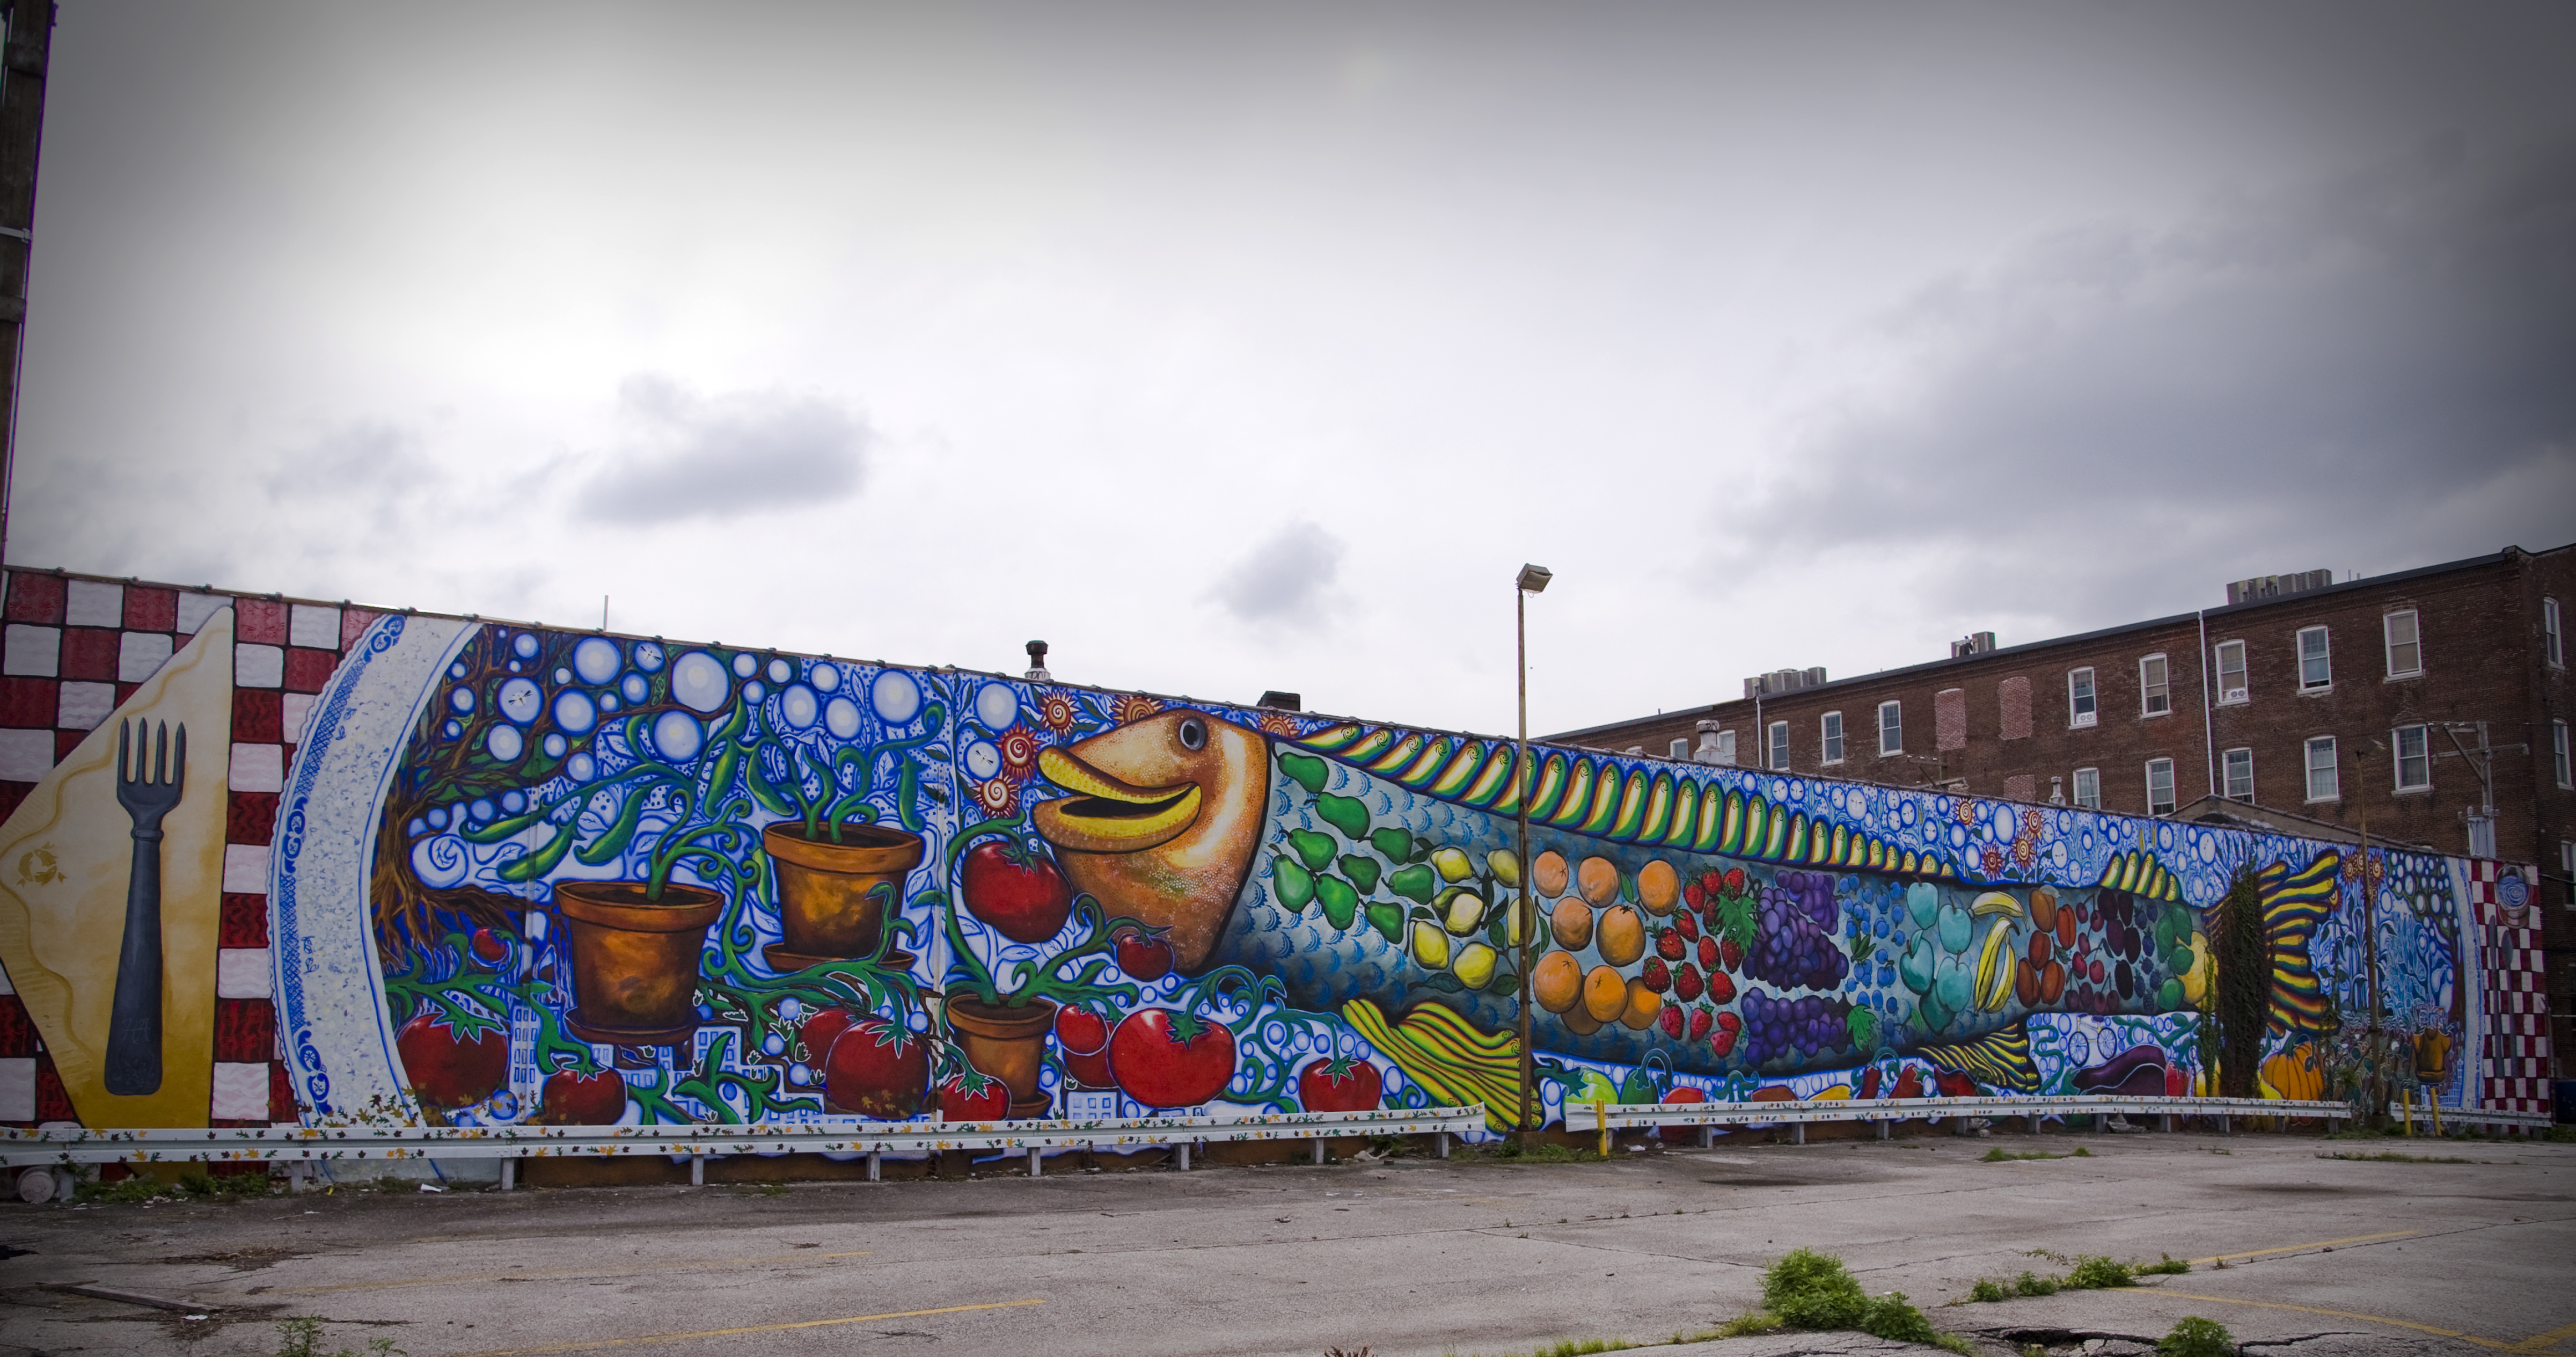 A long mural with a colorful fish